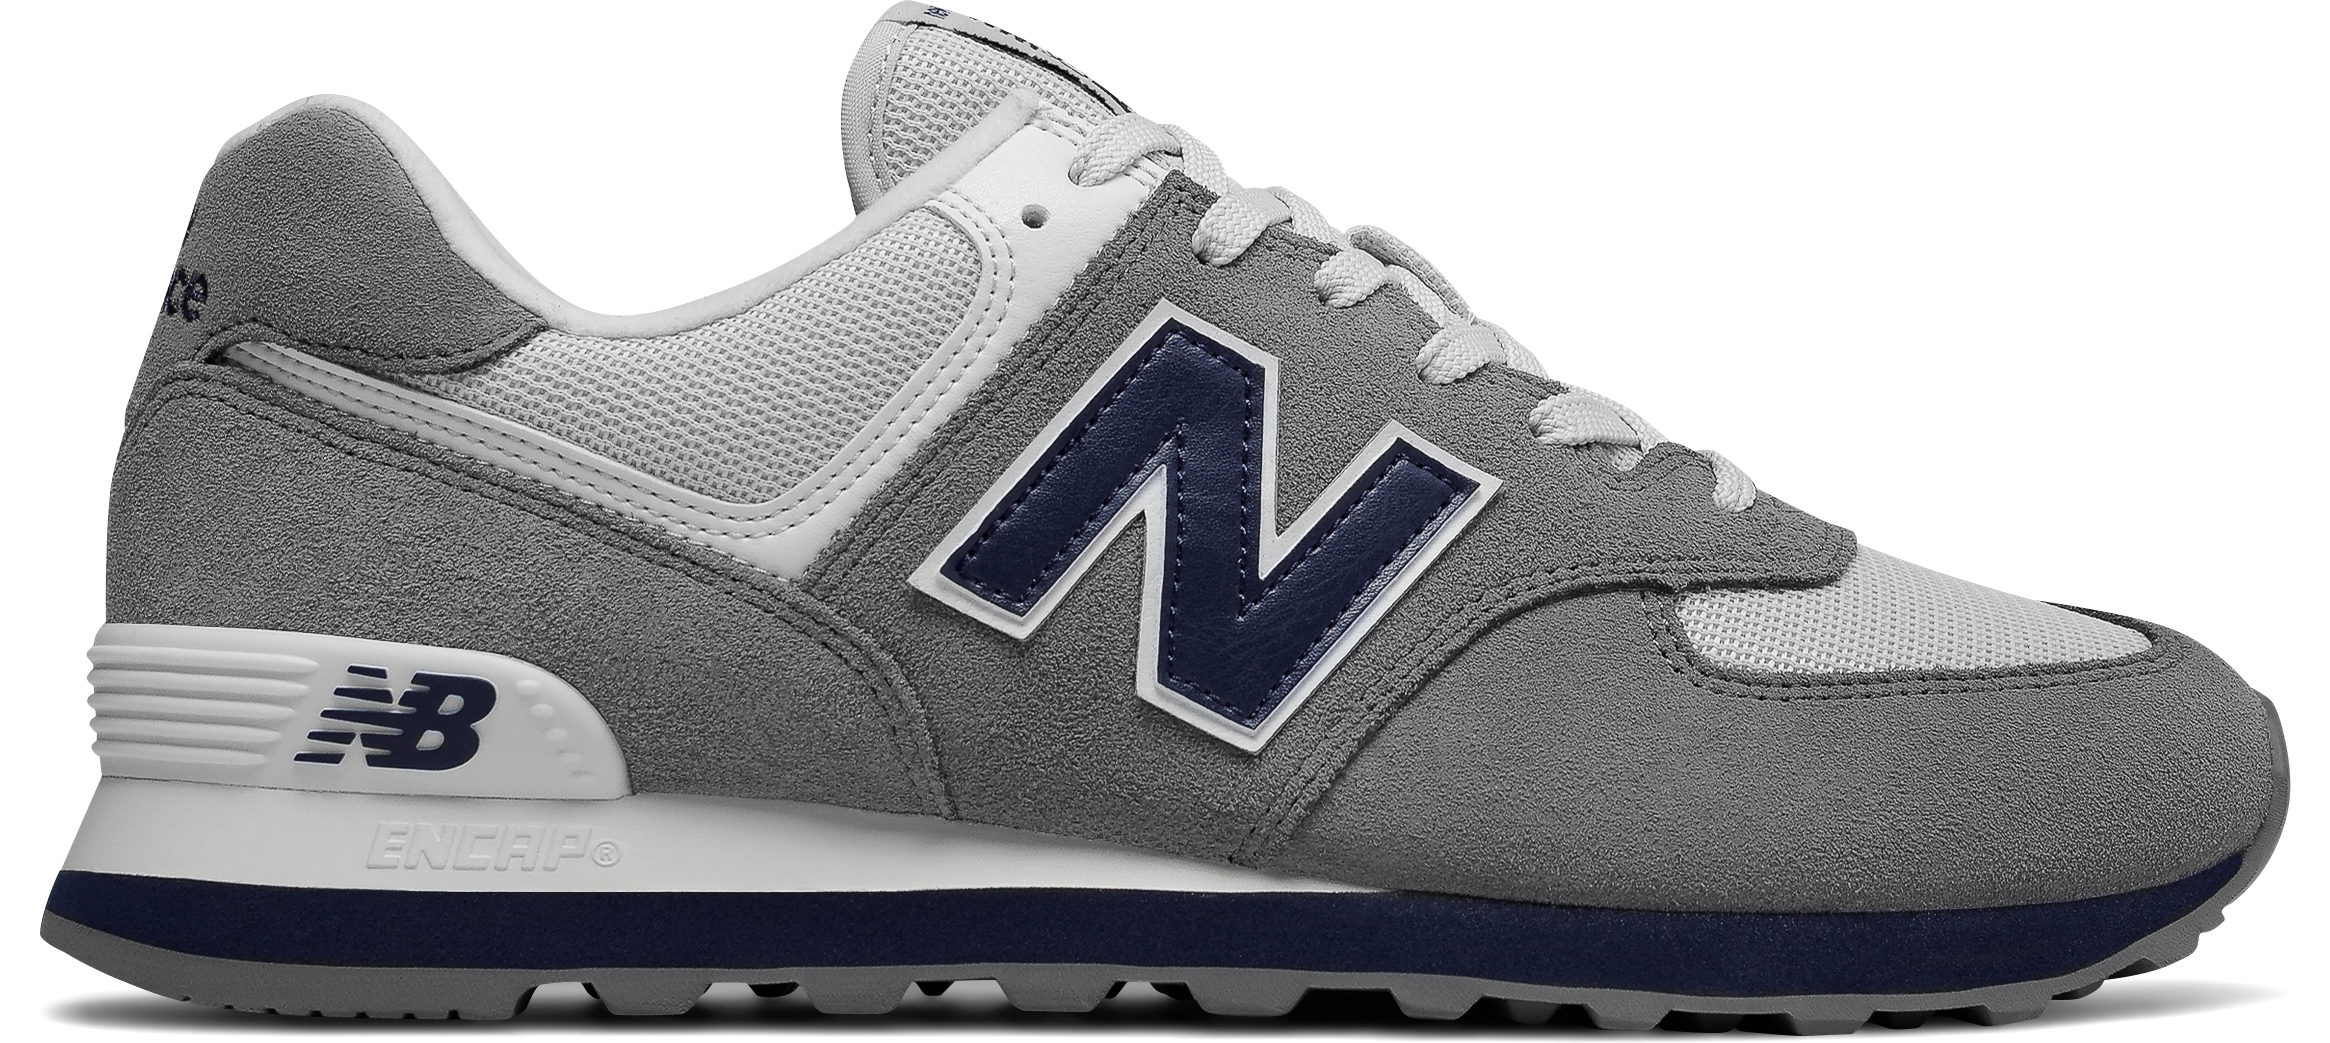 new concept 97bb5 4a05f New Balance 574 Shoes - Men's | MEC